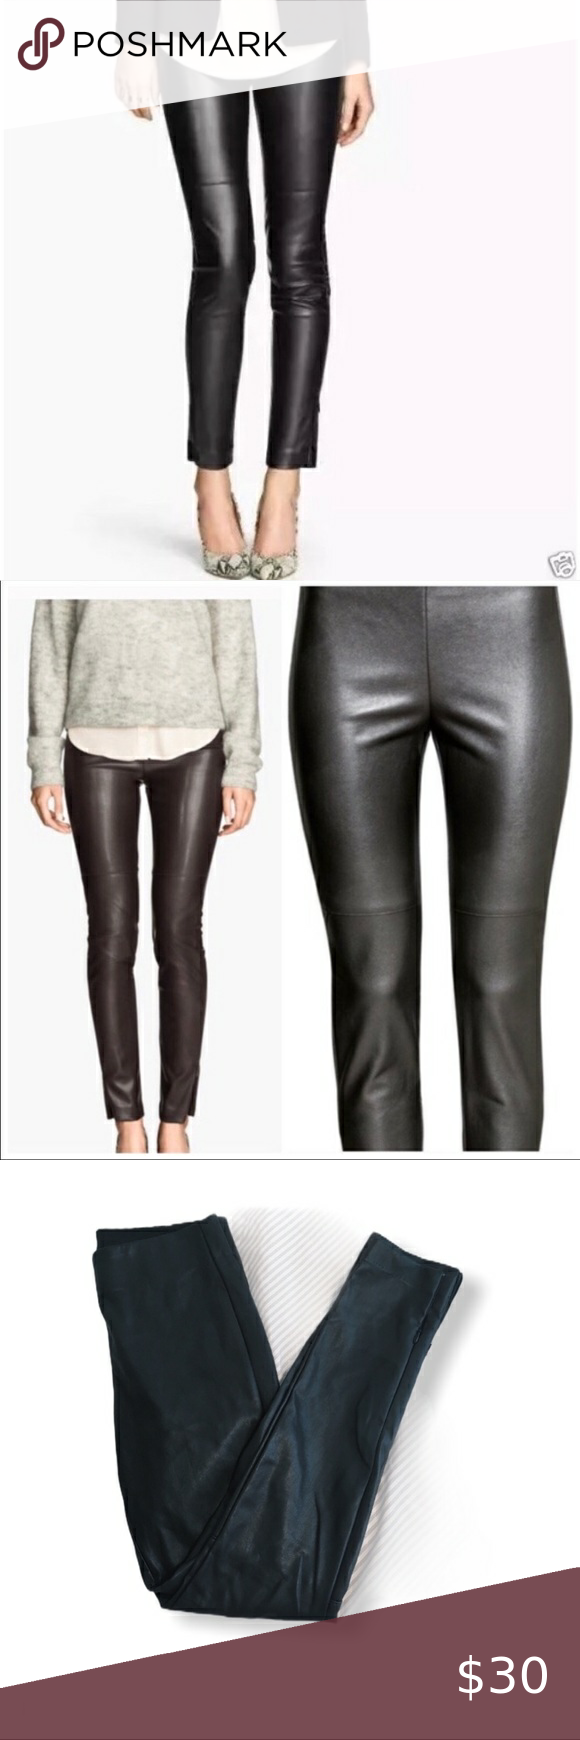 H M Vegan Leather Ankle Zip Leggings In 2020 Ankle Zip Leggings Faux Leather Leggings Leggings Are Not Pants